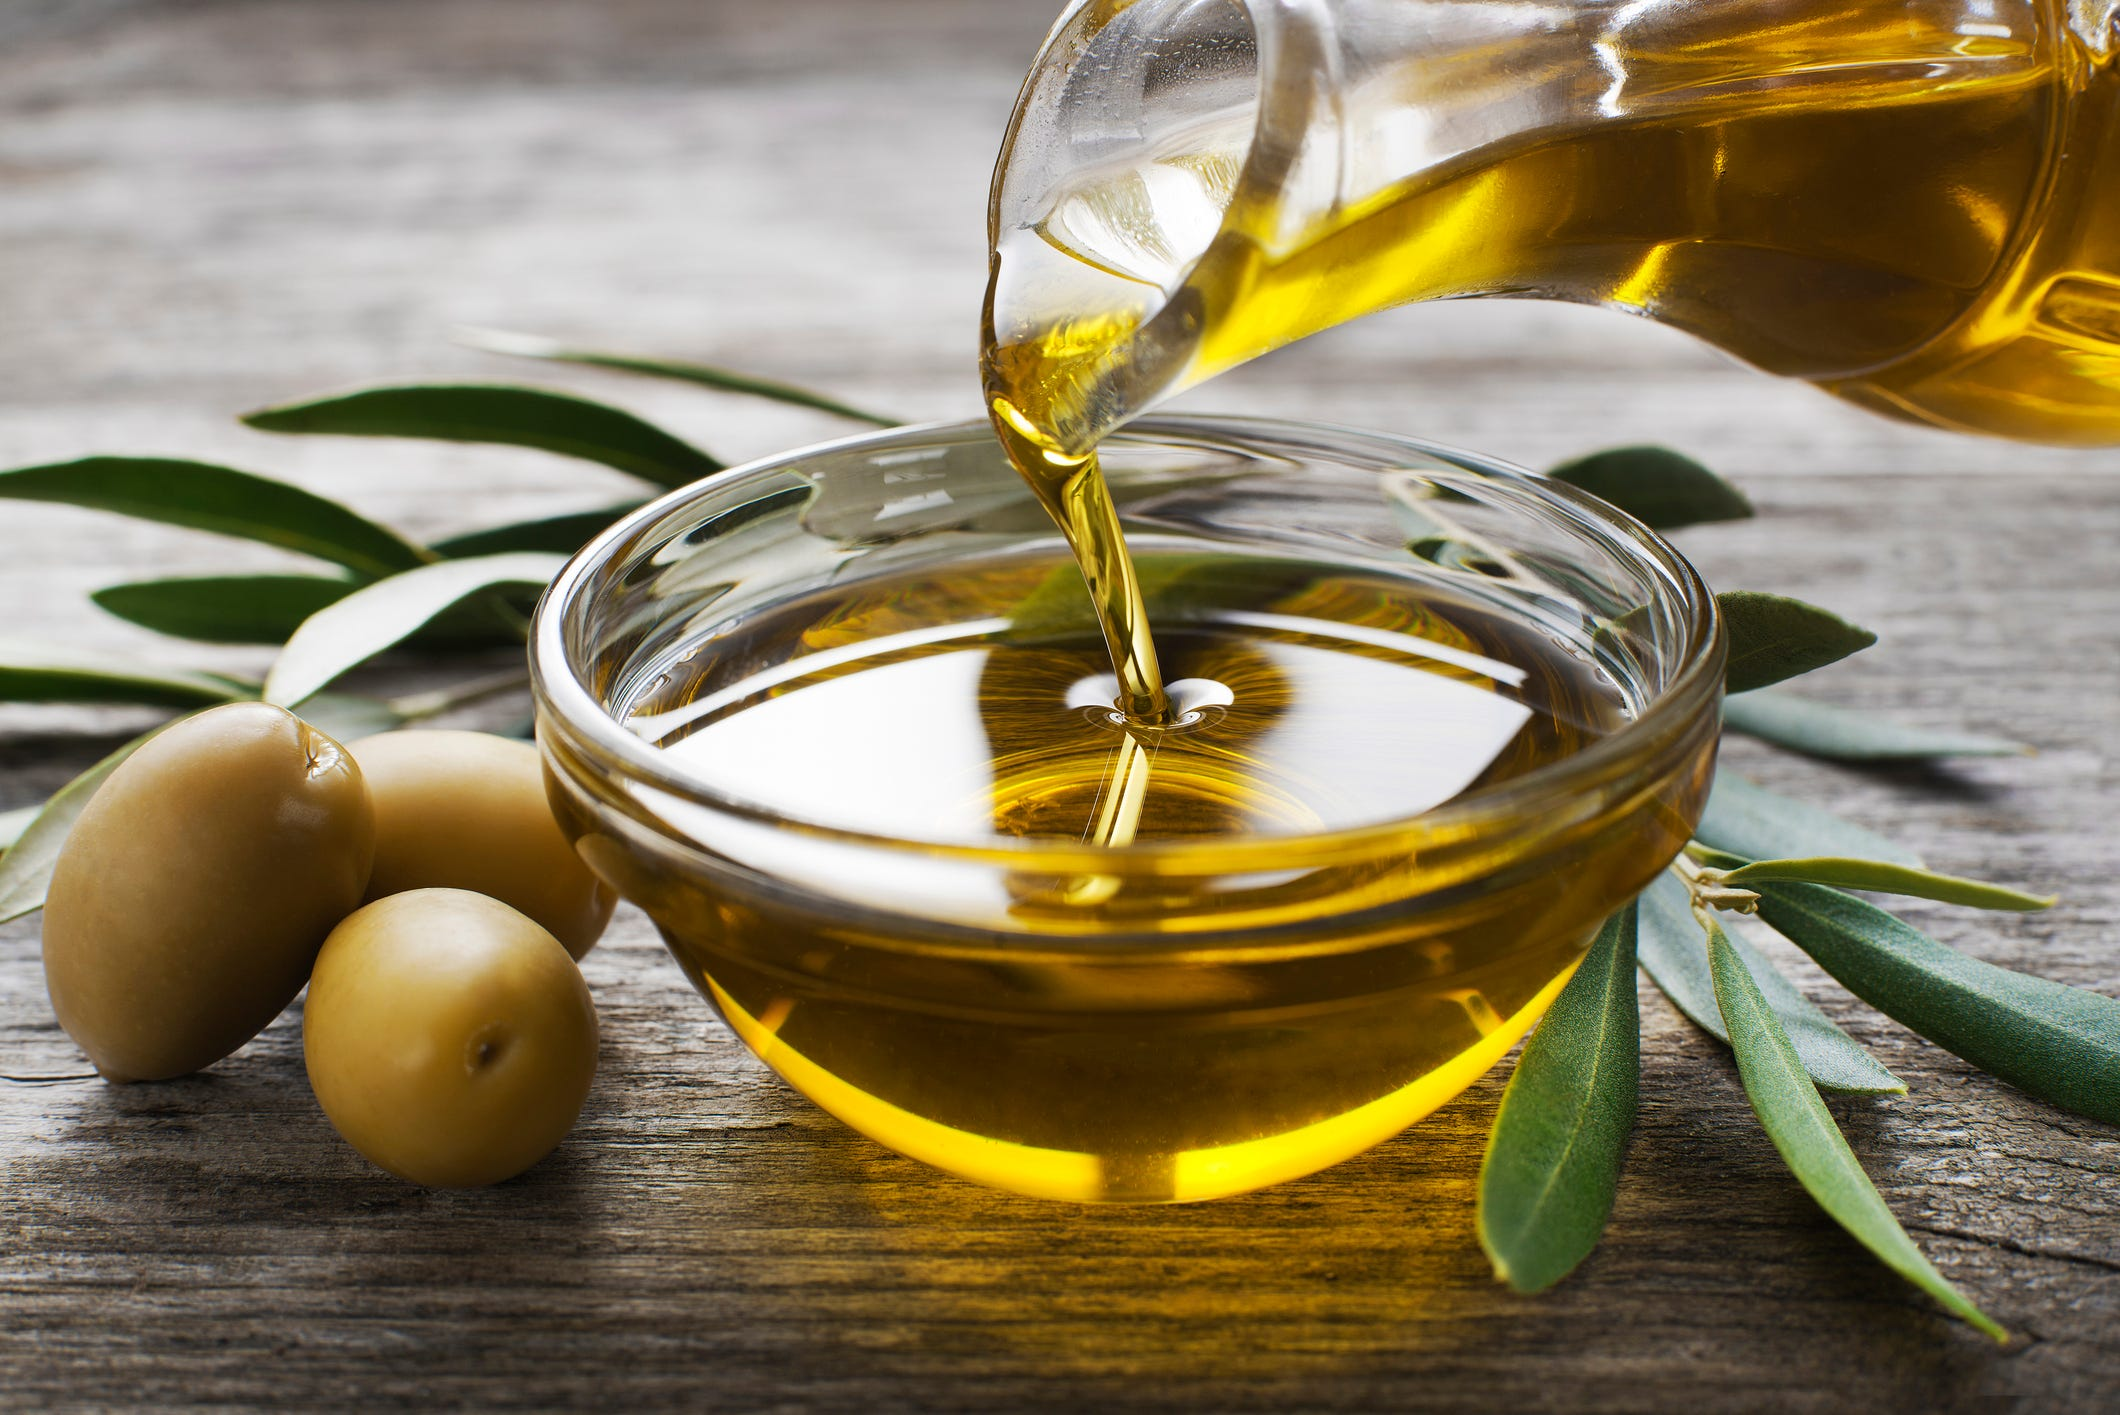 Forum on this topic: Is Olive Oil An Effective Solution For , is-olive-oil-an-effective-solution-for/